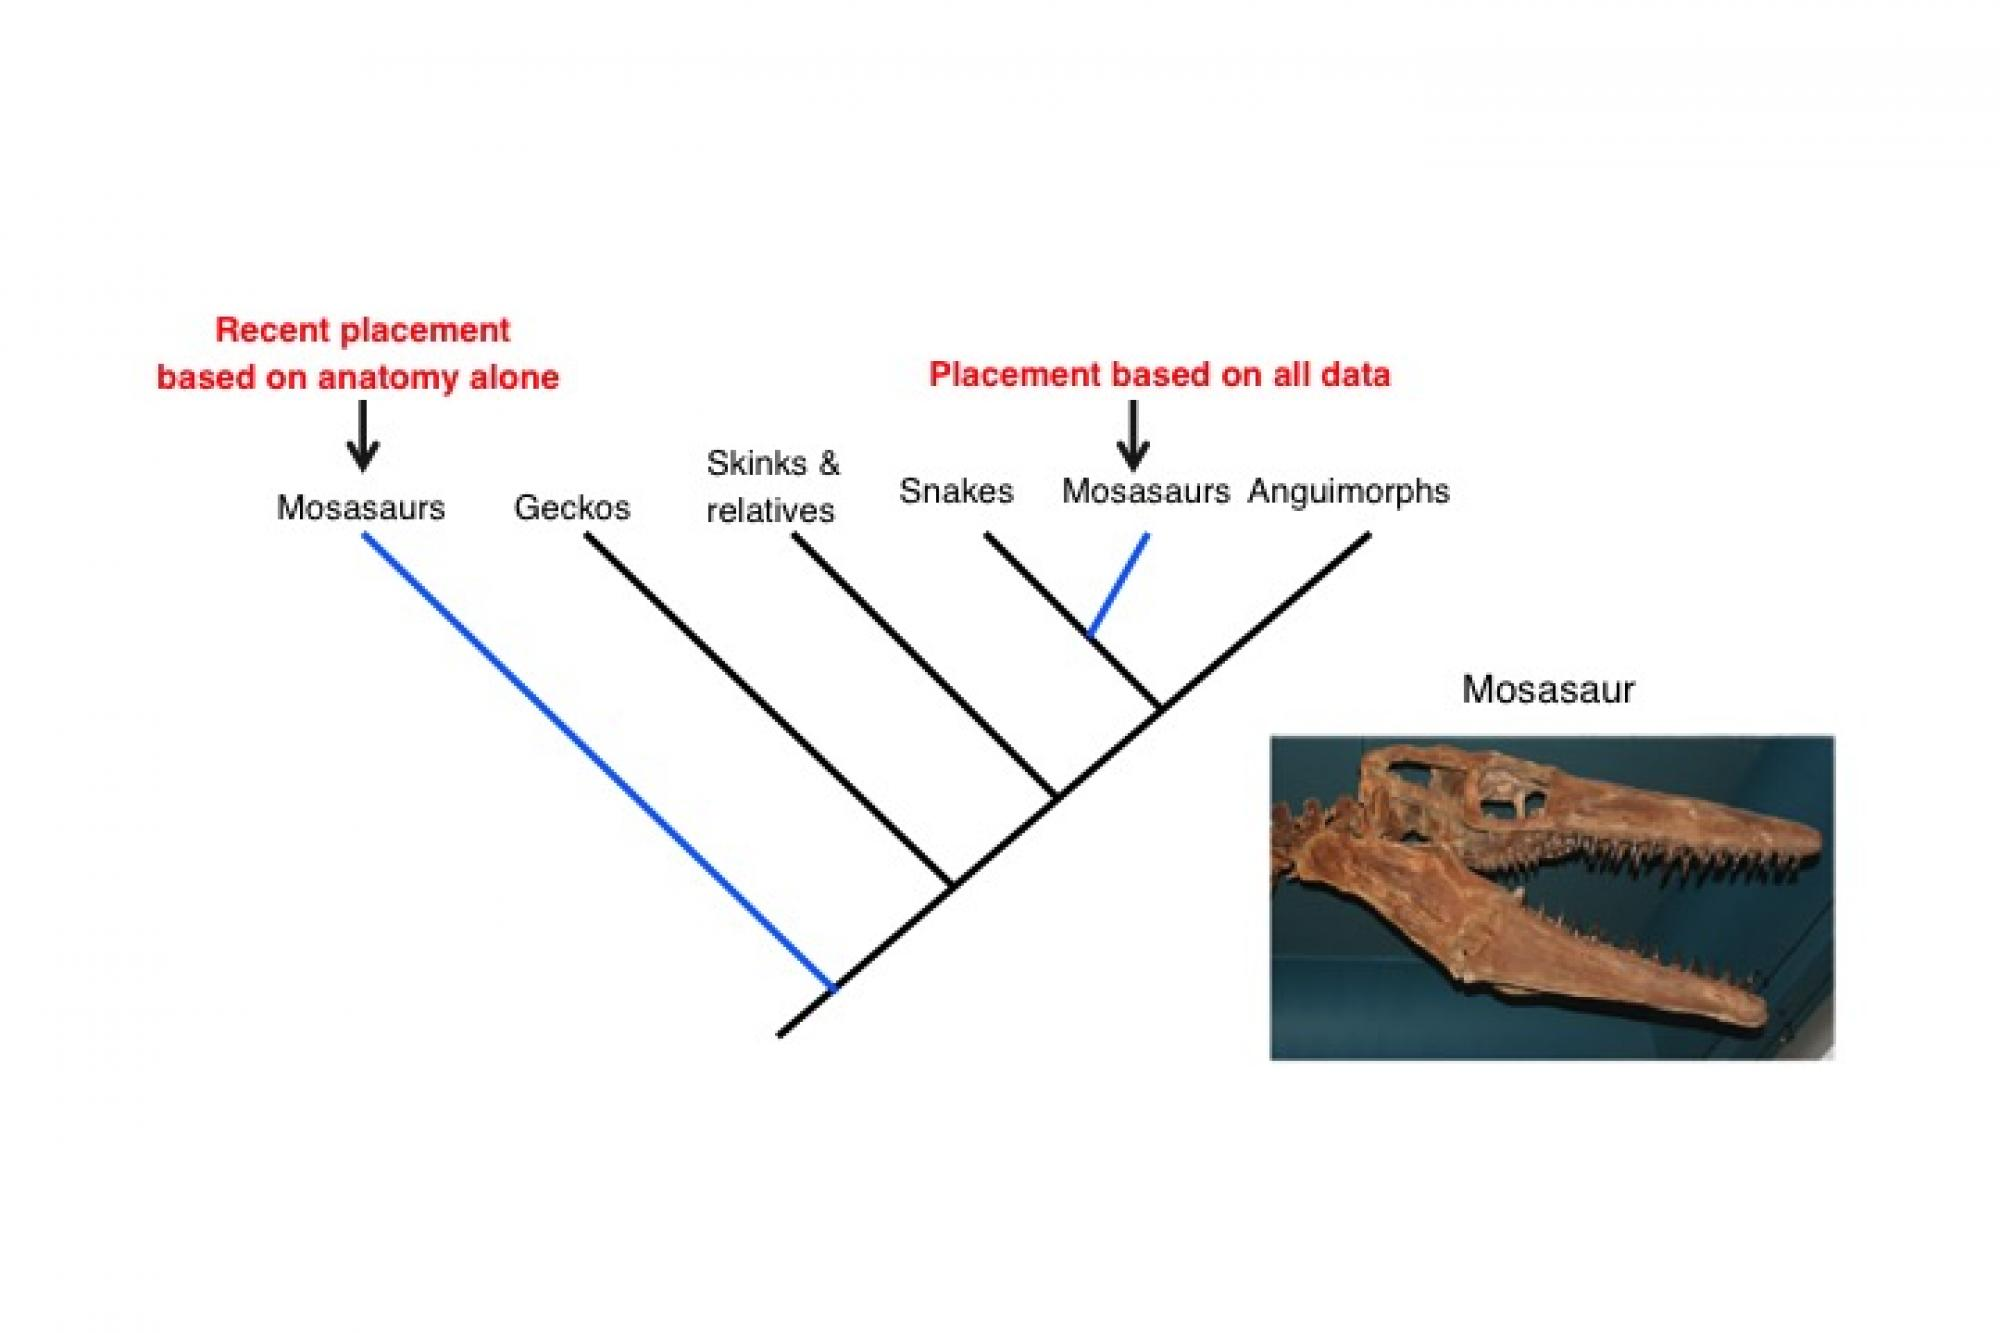 Kinship of the slithering kind: The study puts mosasaurs closer to snakes than monitor lizards, previously considered close kin of theirs.